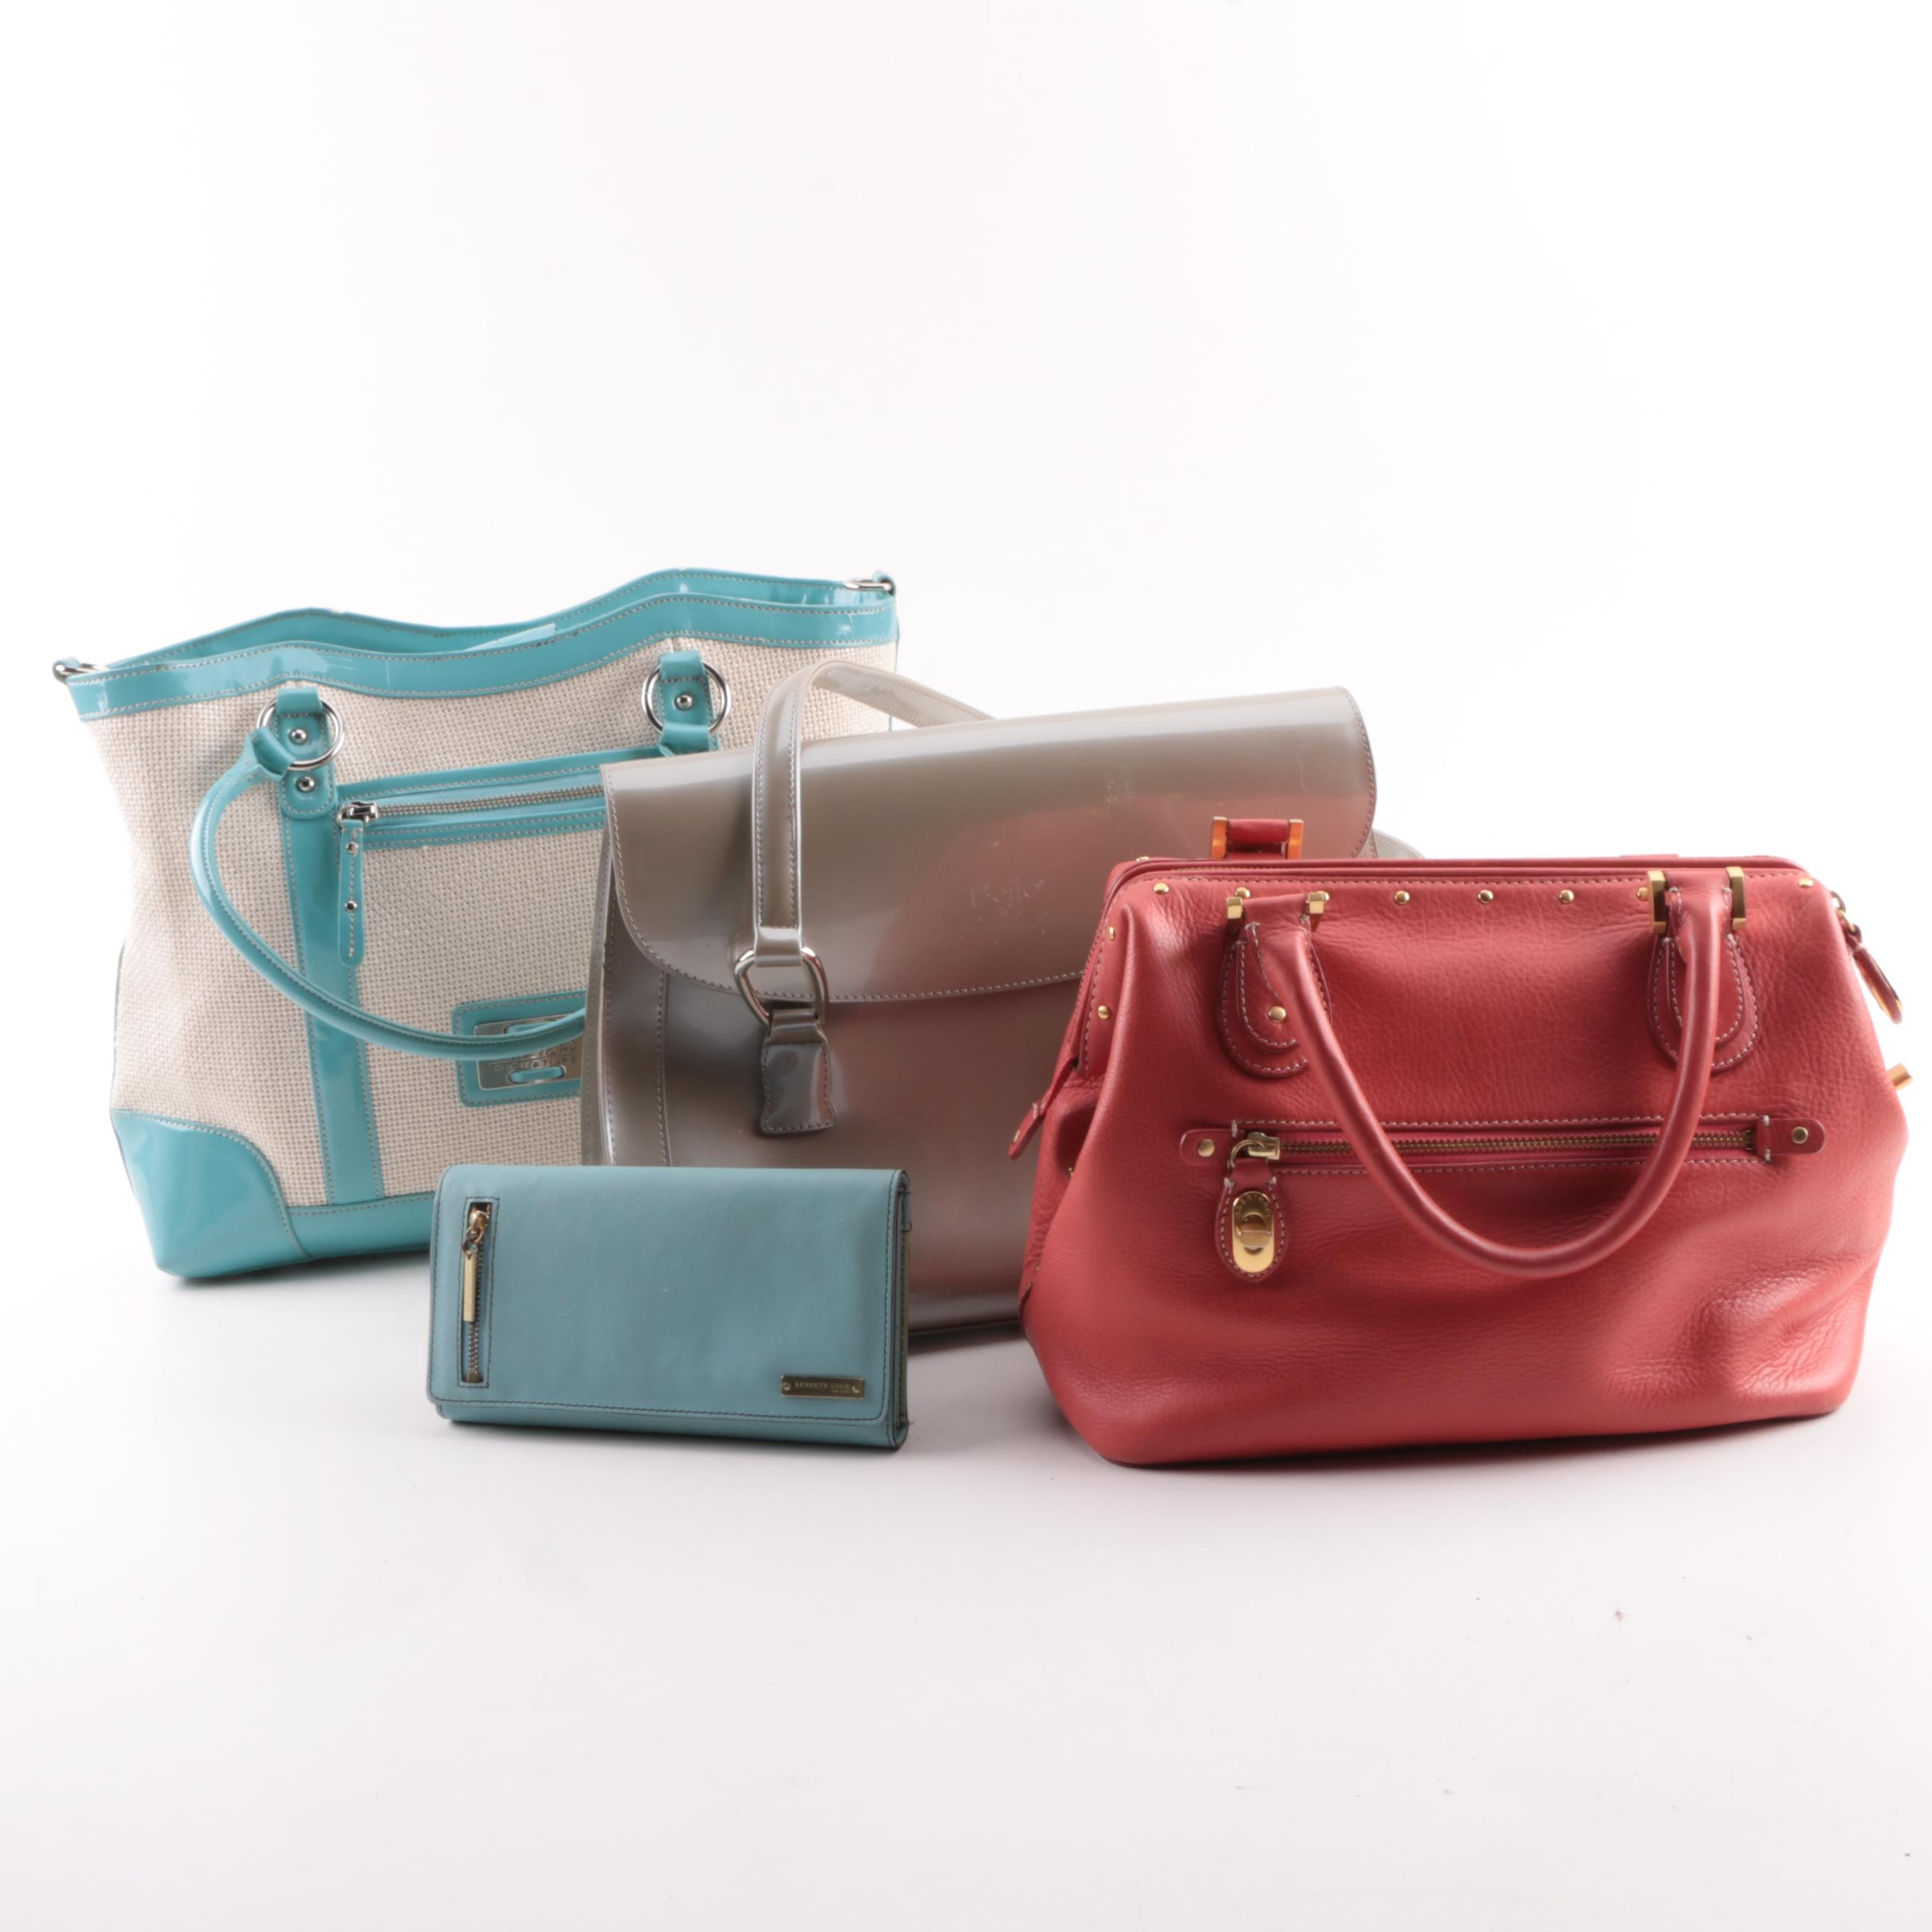 Ellen Tracy, Kenneth Cole New York, and Other Handbags and Wallets